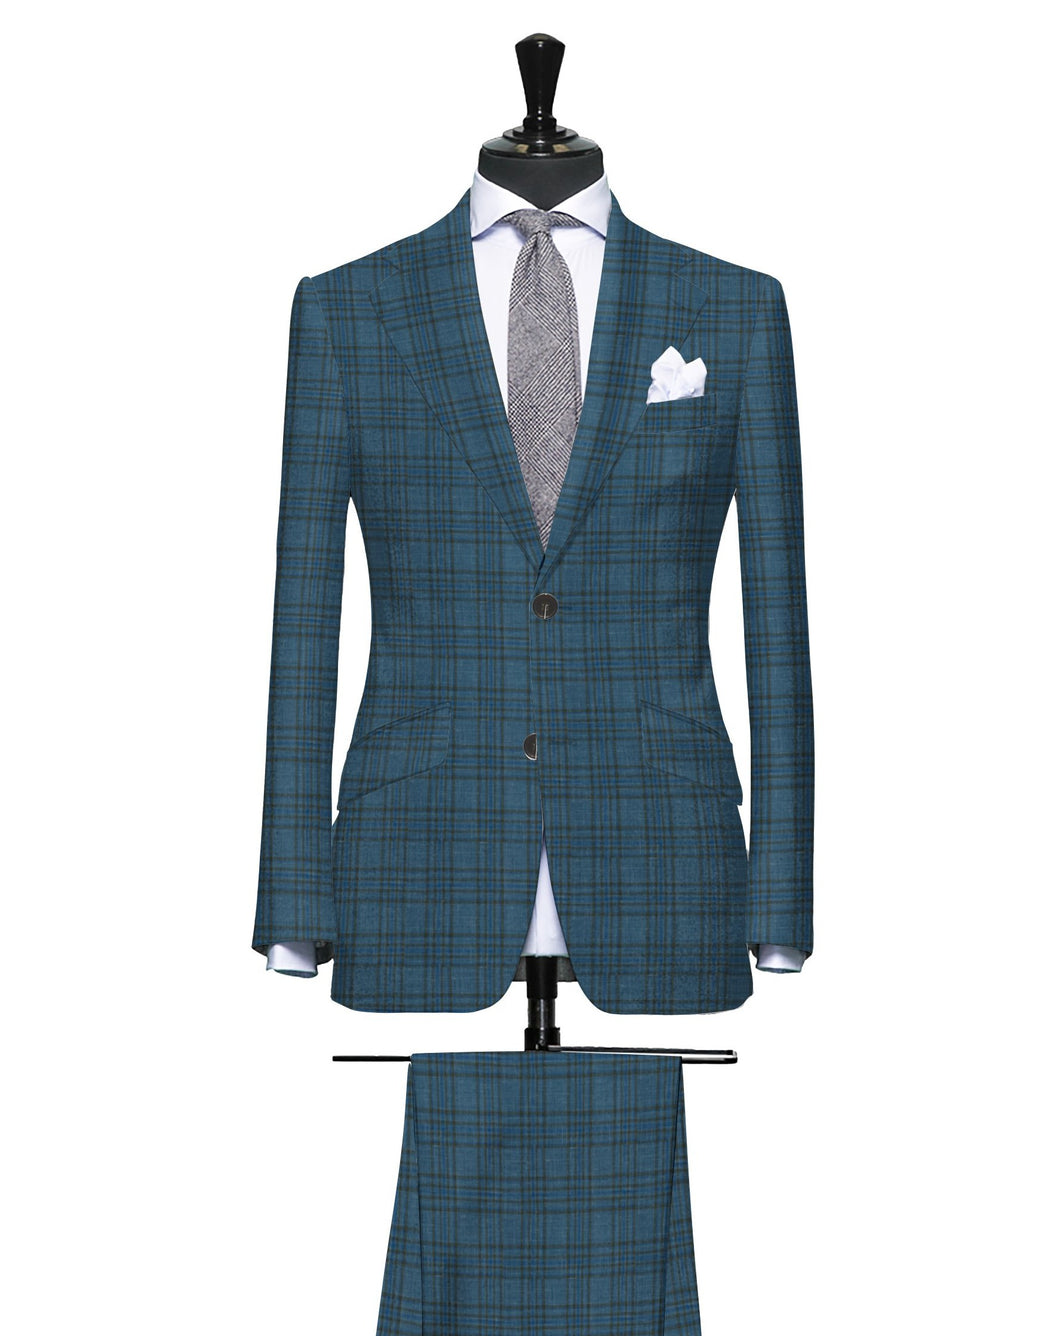 Multi Layered Shades of Blue with Brown Plaid Pattern, Super 160, Linen Silk Wool